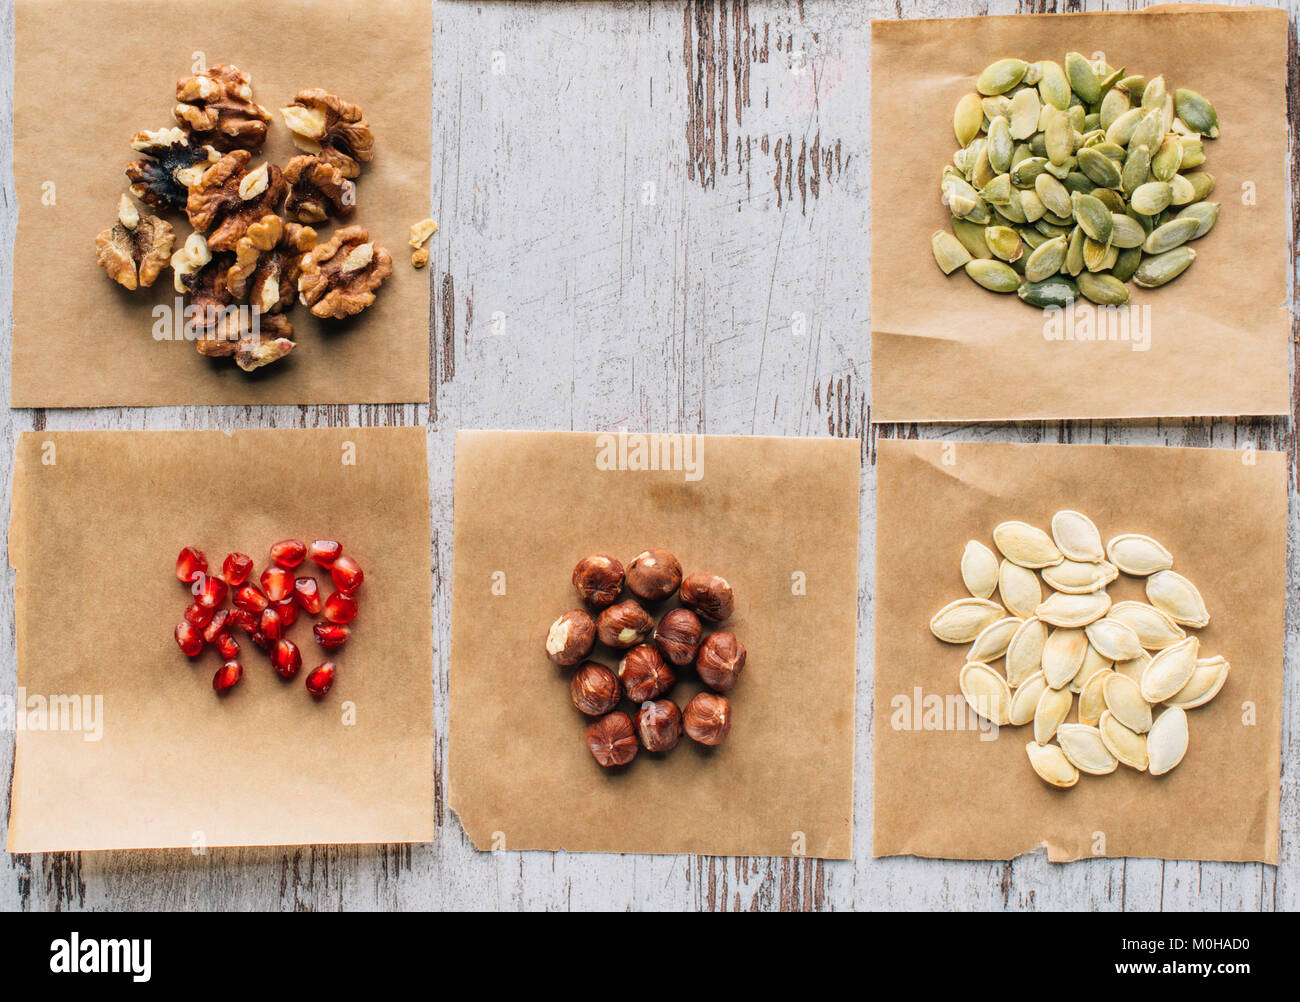 top view of nuts, pumpkin seeds and pomegranate seeds on table - Stock Image